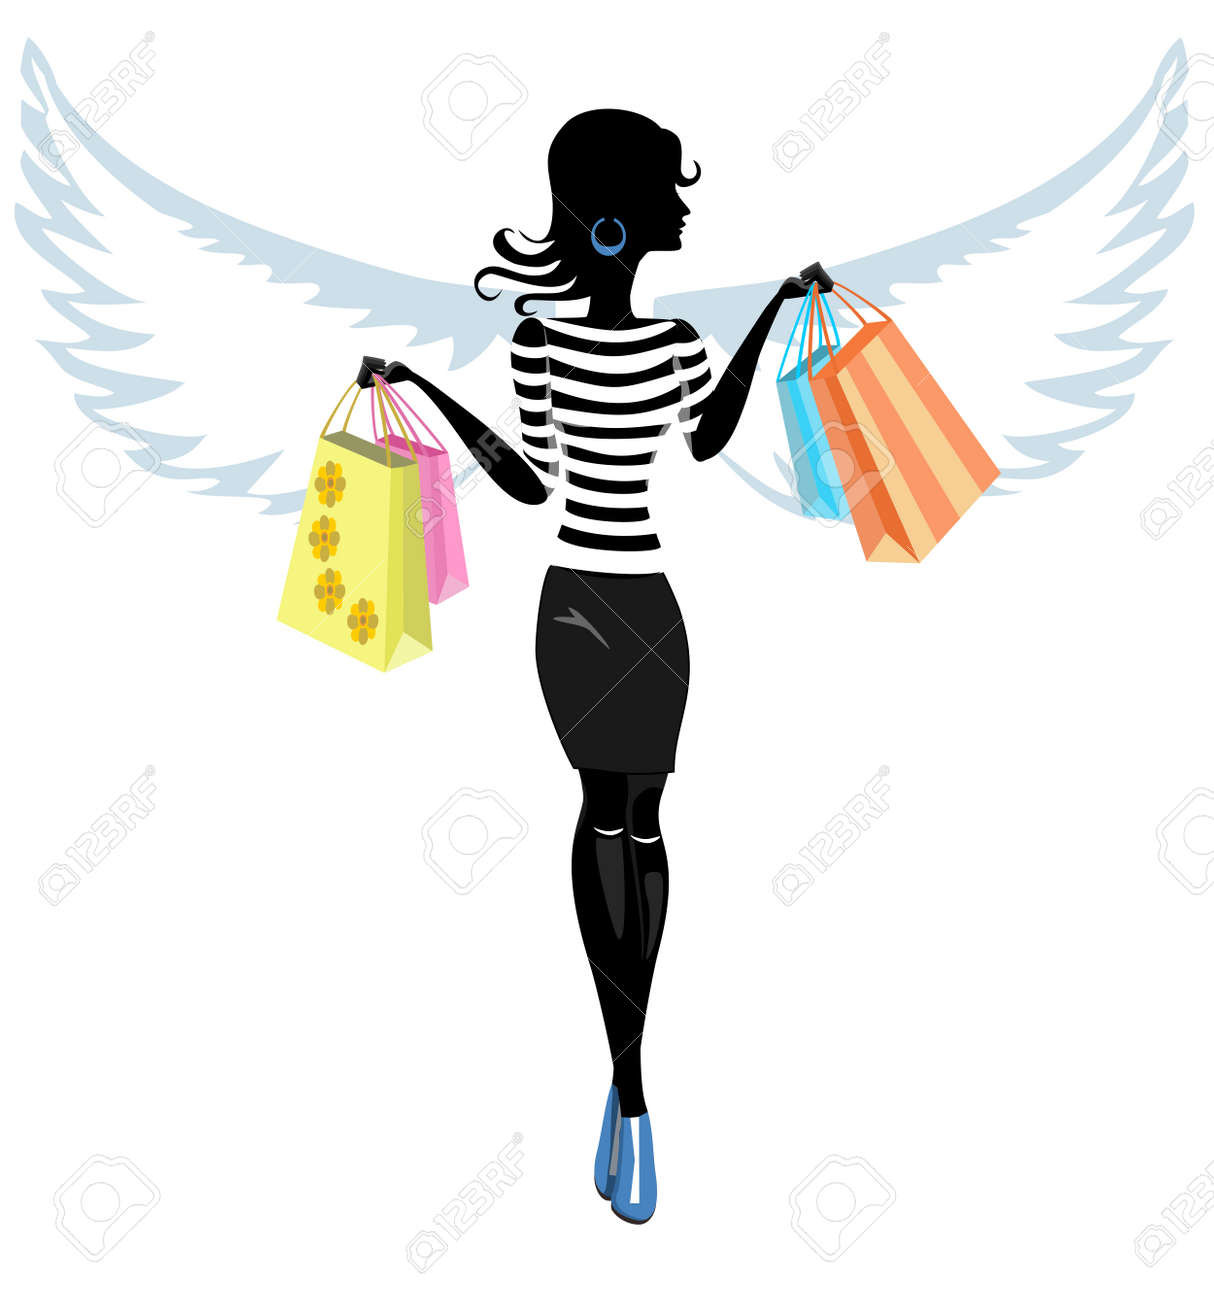 b62af02e47e7 Silhouette of a Pretty Young Woman Angel with the Purchase go to Shopping  Illustration Stock Vector